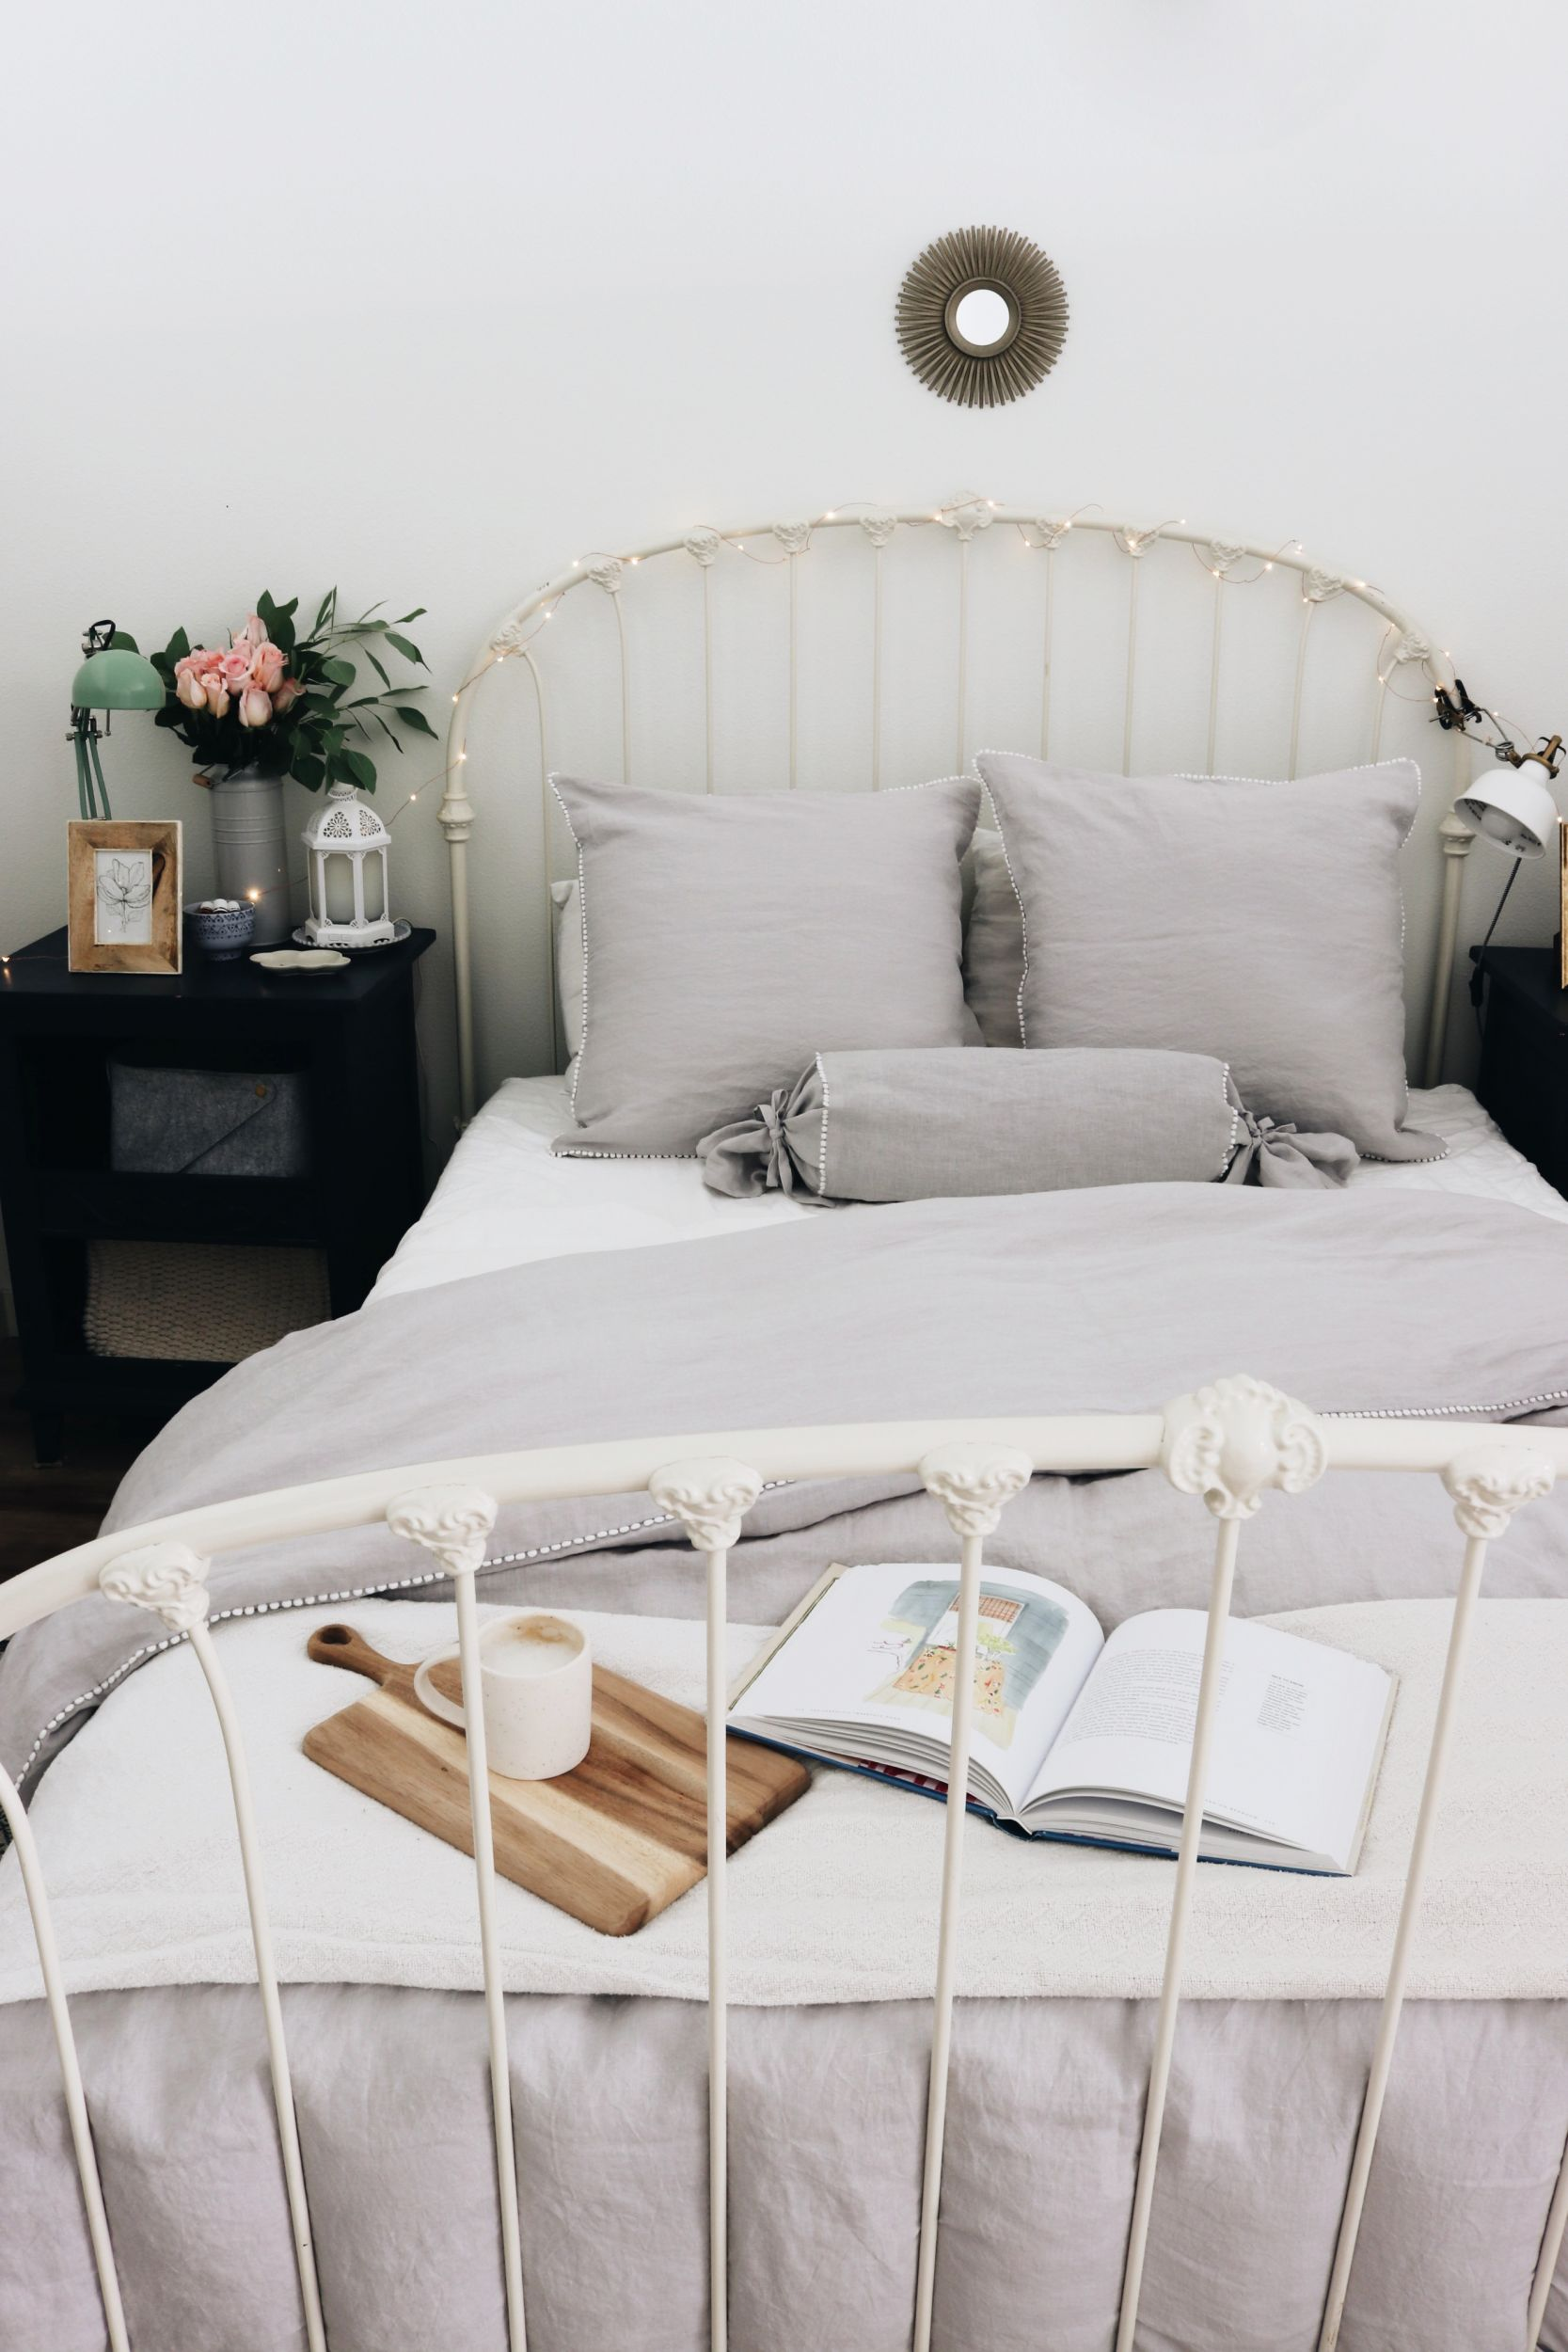 Courtney's Studio Apartment Bedroom Tour + Linen Bedding